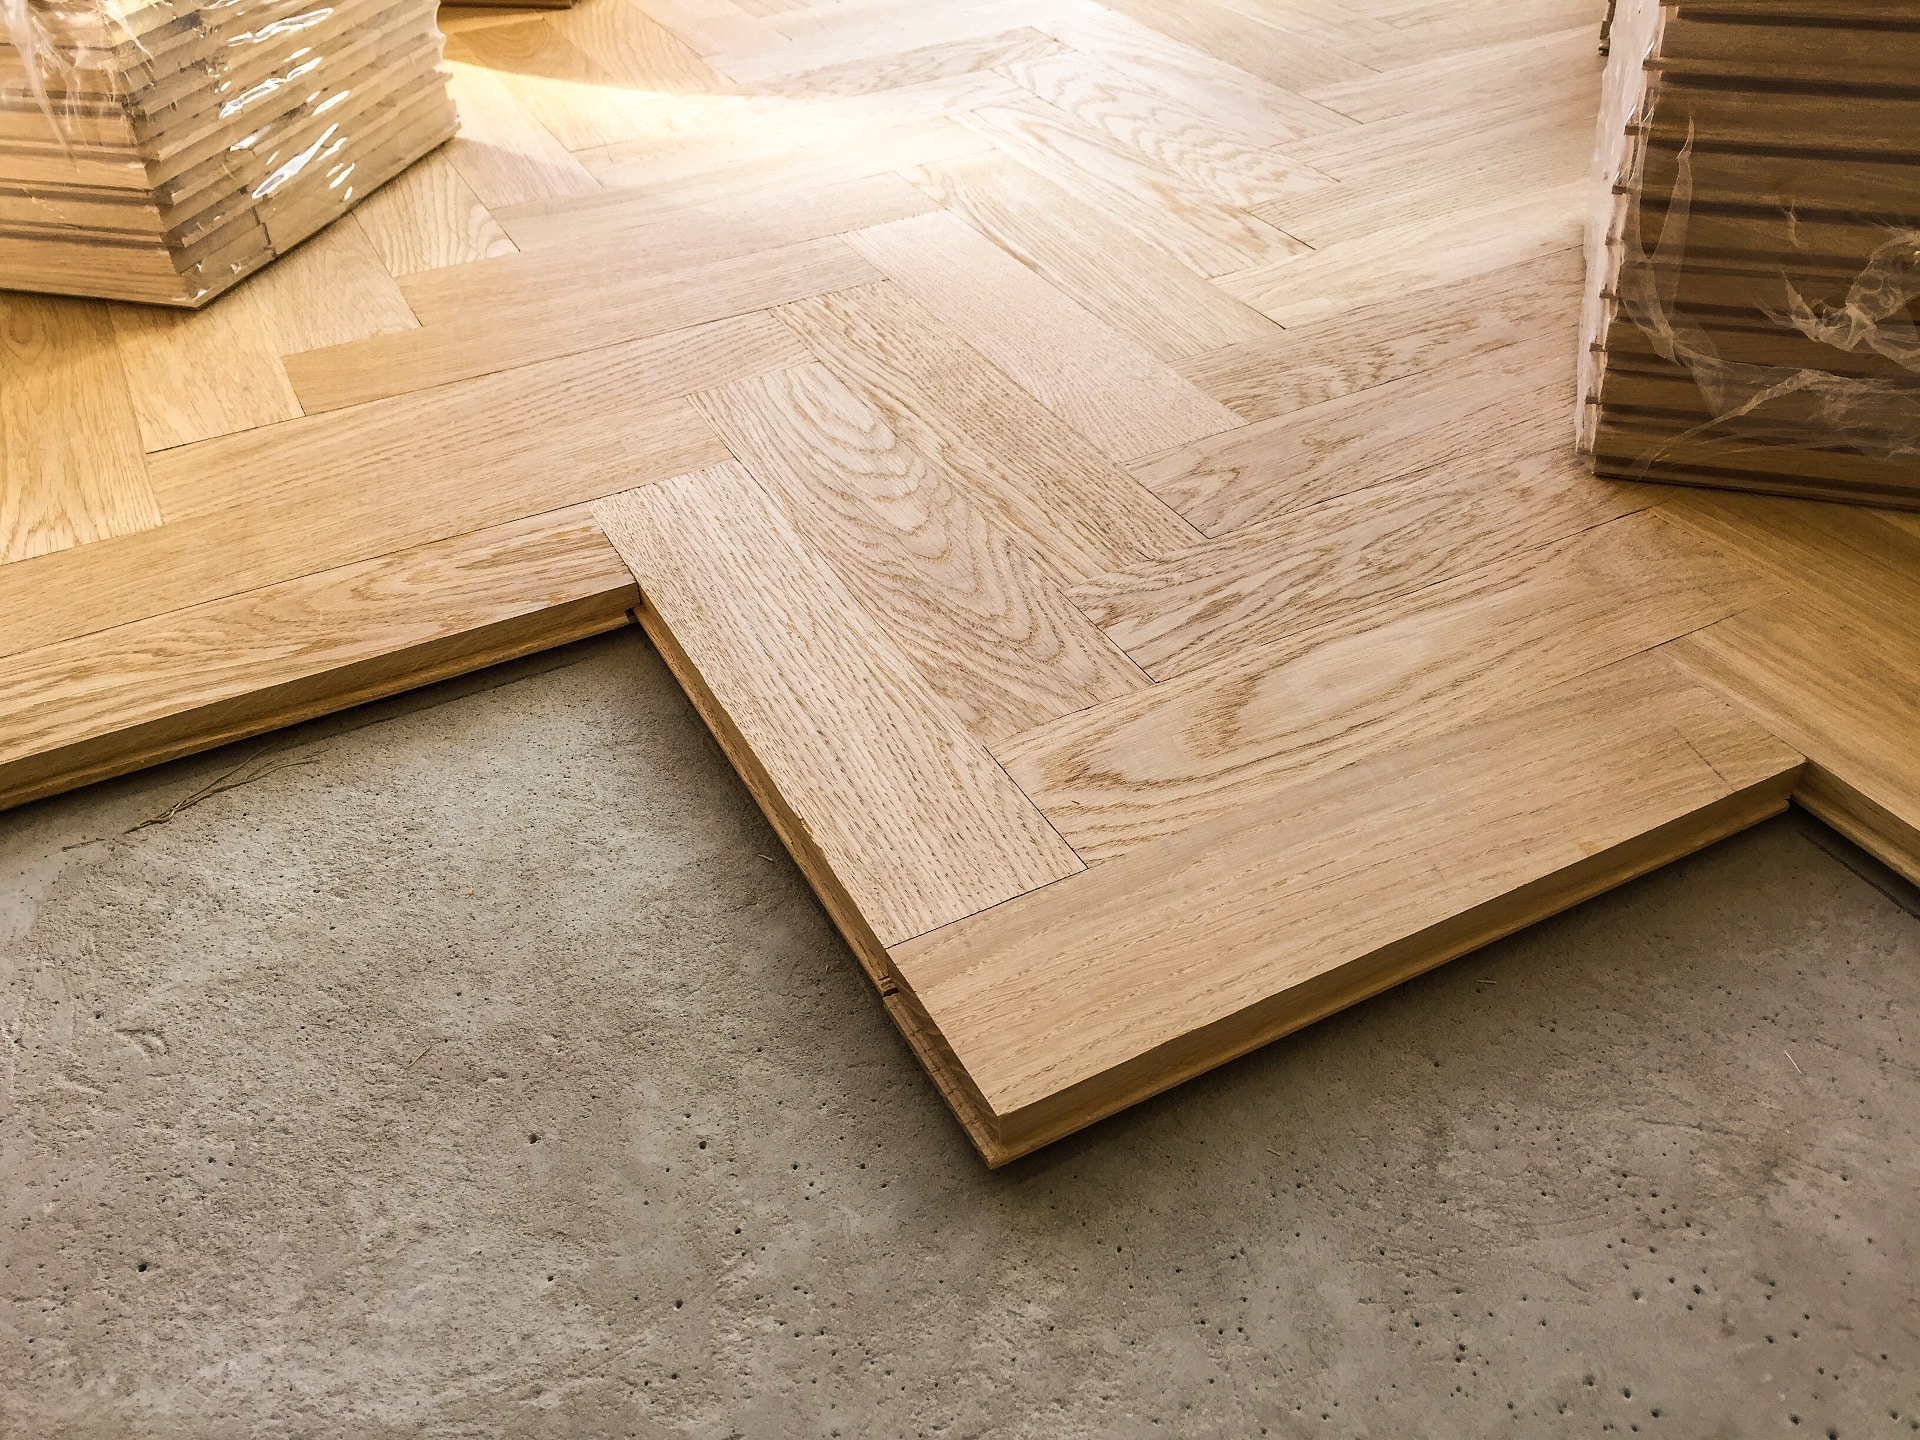 wood parquet flooring being laid on a kitchen floo PWGD5AH